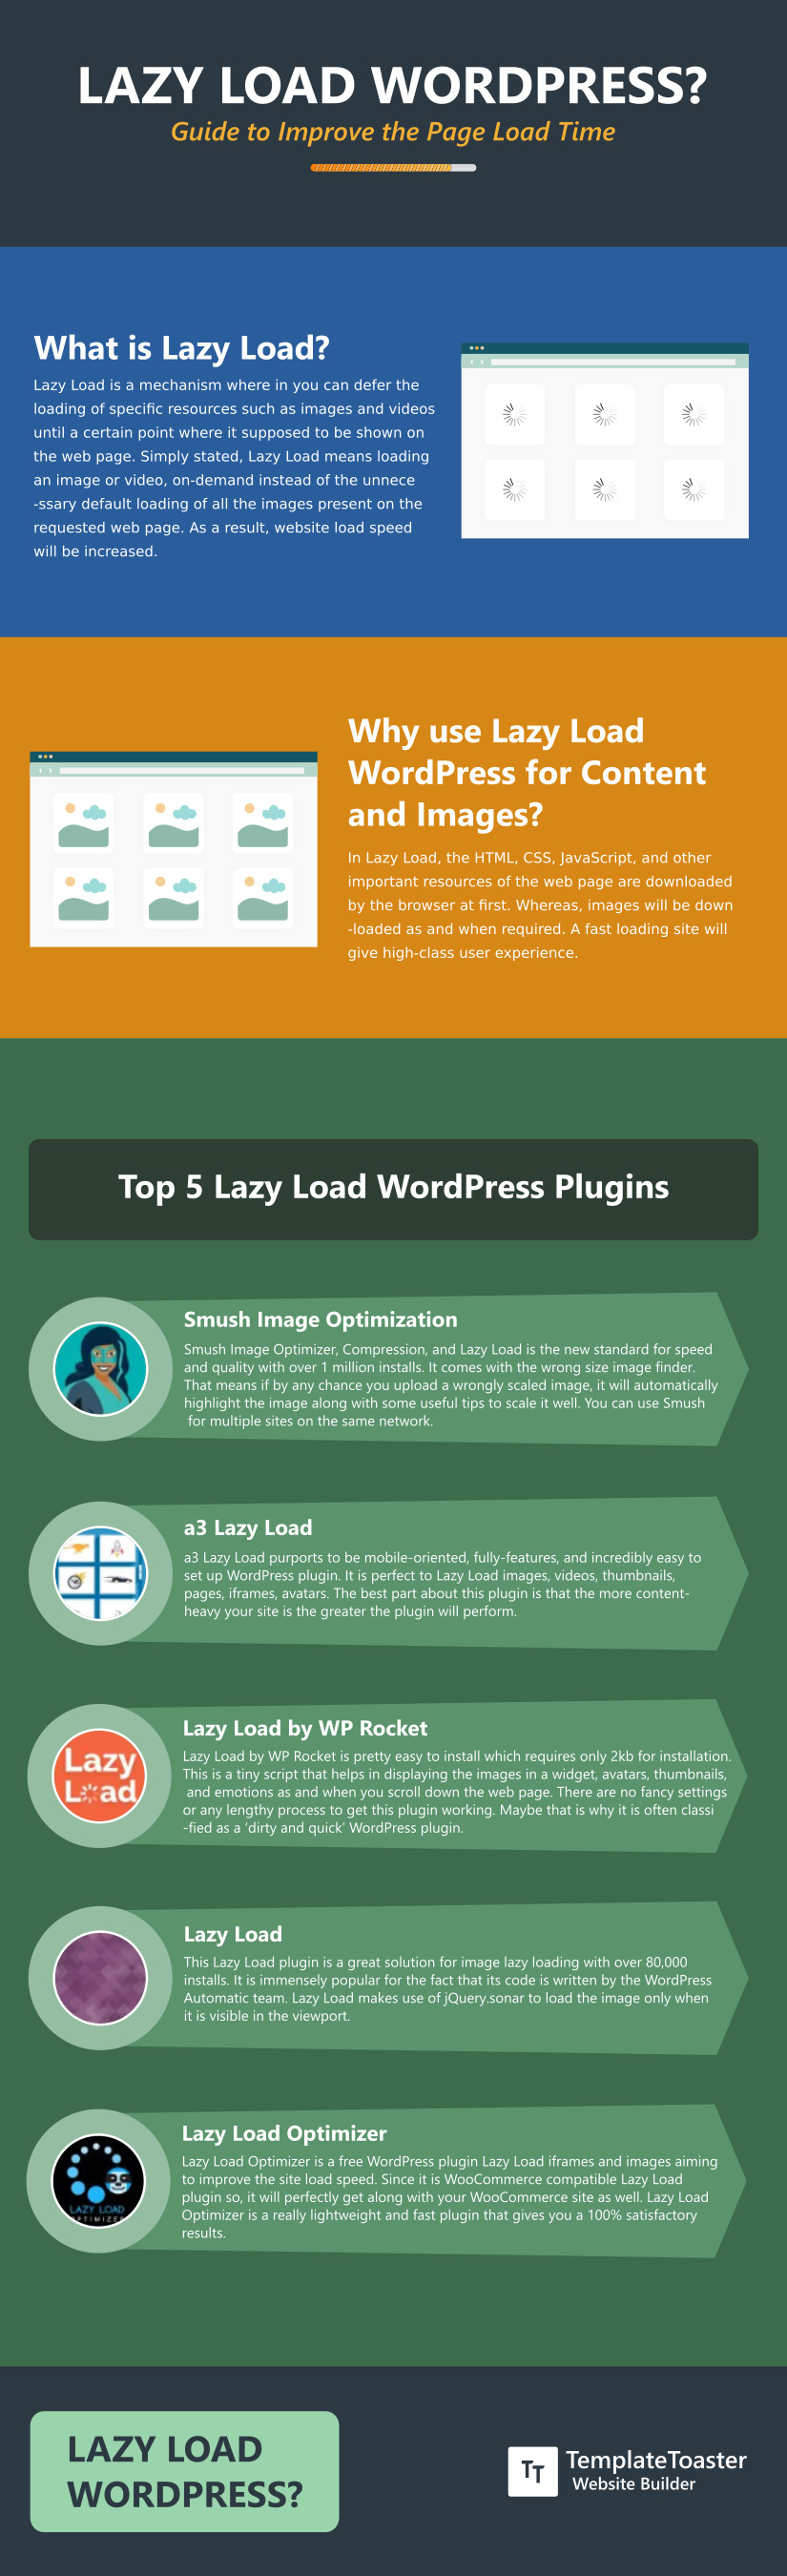 lazy Load wordpress infographic